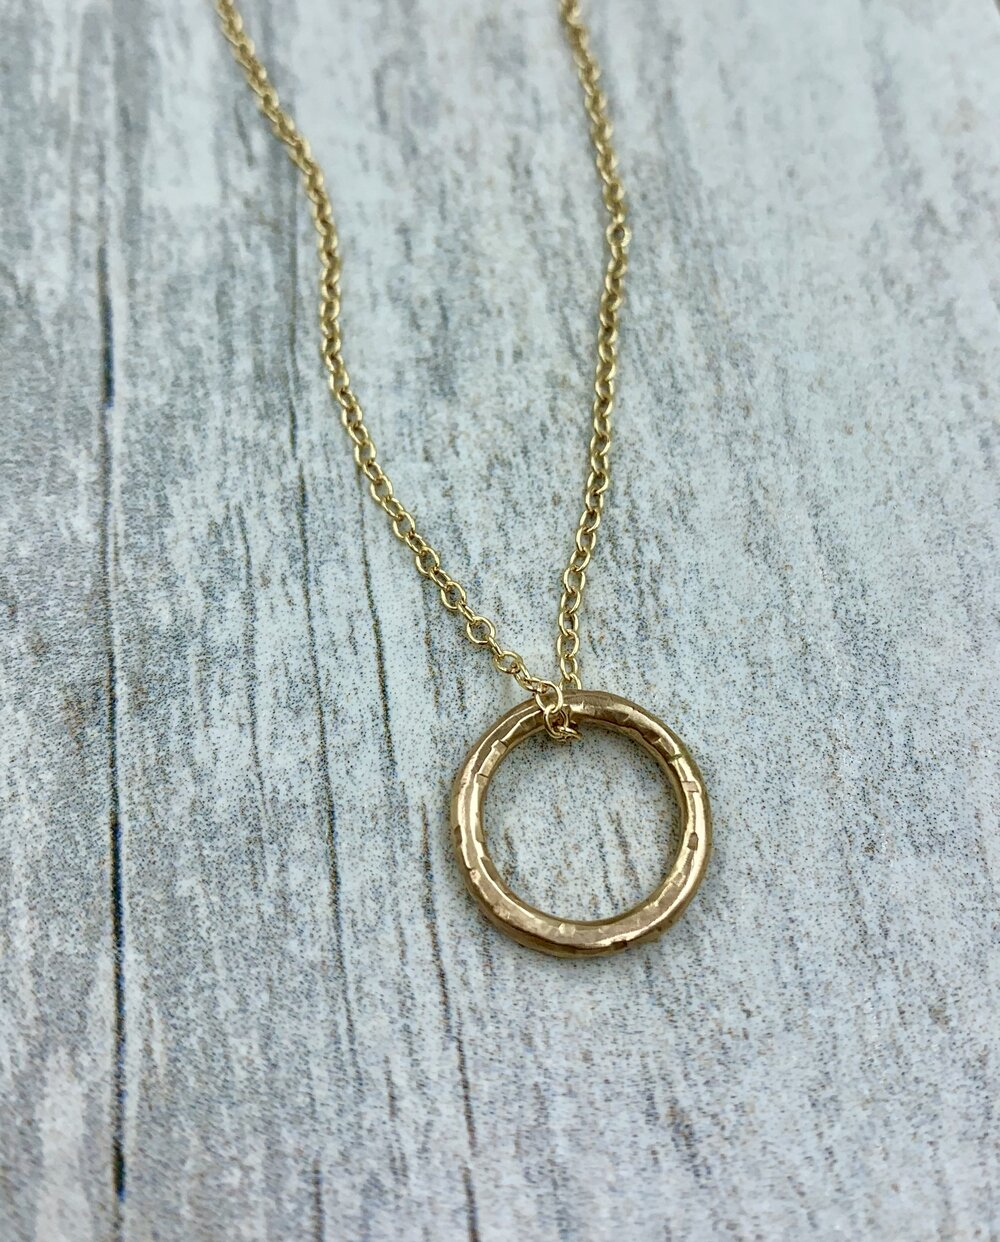 Gold Circle pendent necklace, delicate gold necklace, hammered gold ring, rustic elegant jewerly, gold ring, handmade